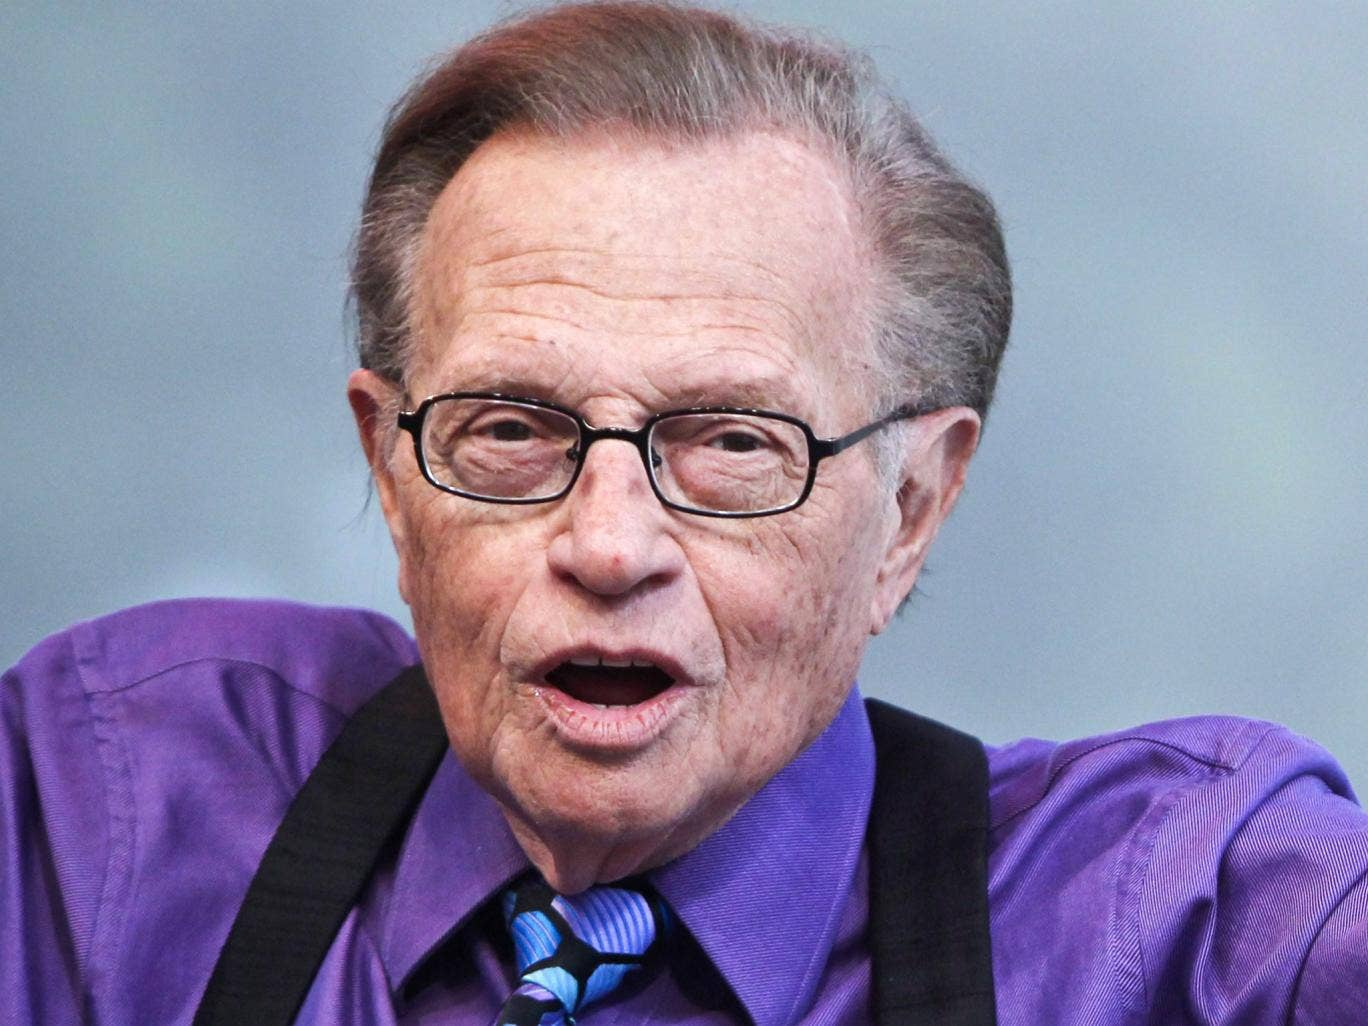 Larry King handed over his CNN timeslot to Piers Morgan in 2010